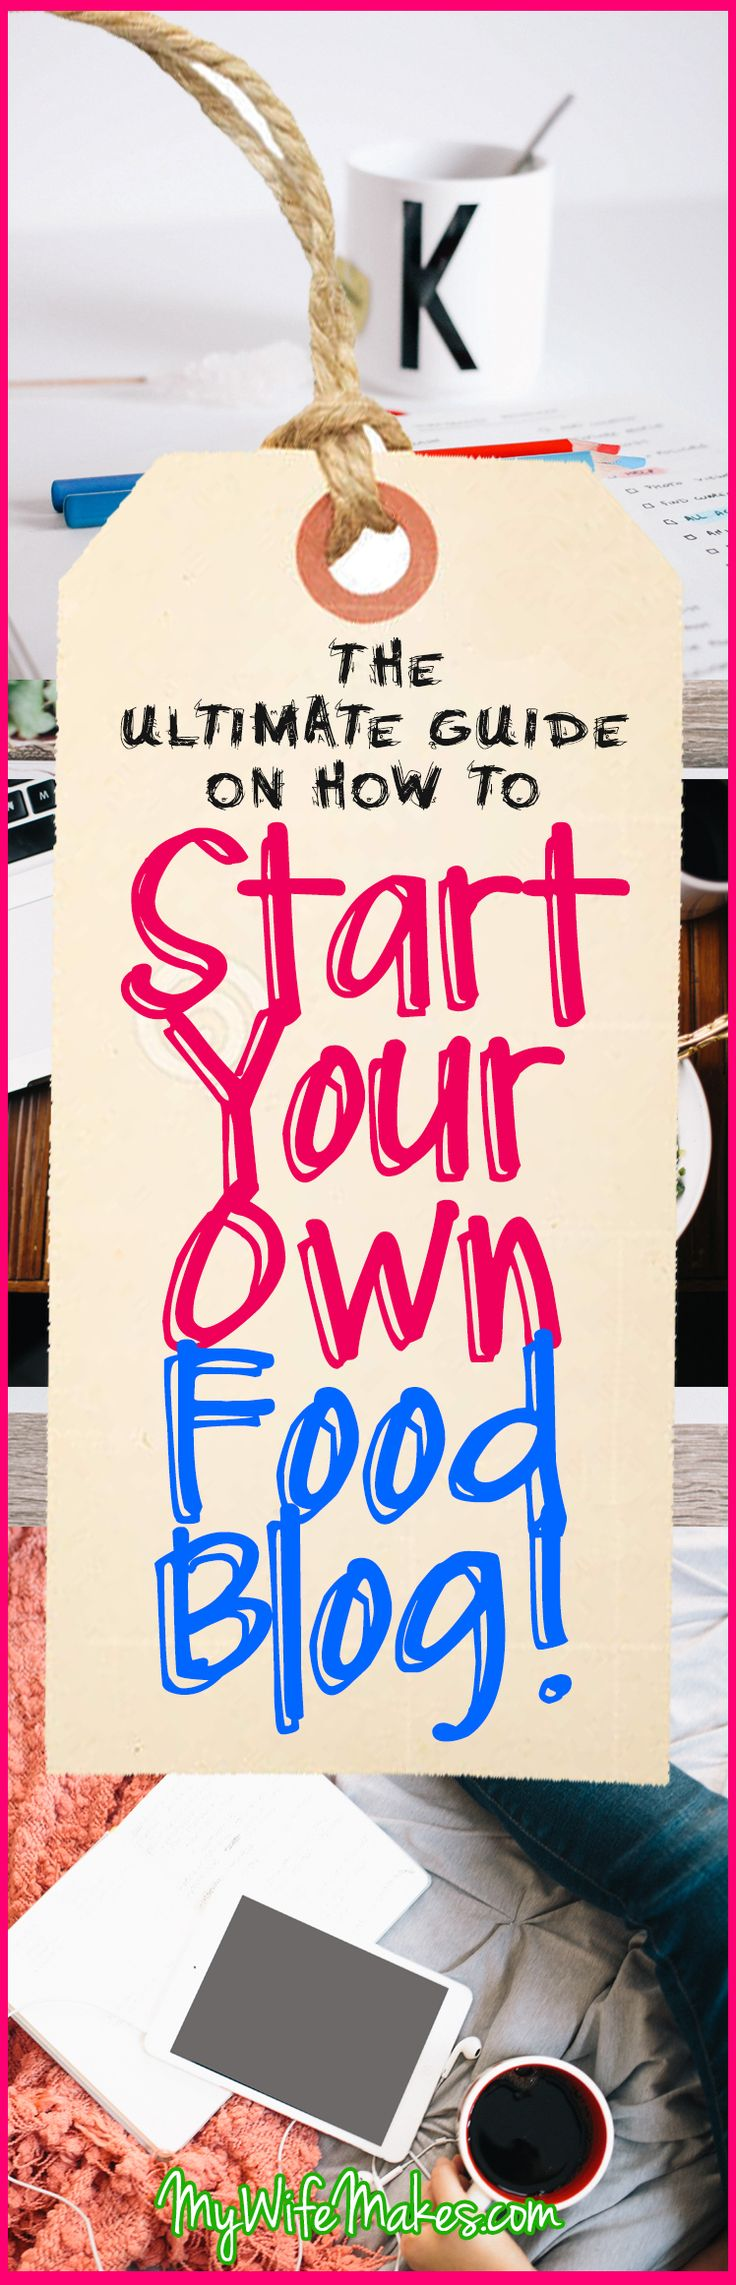 How to Start A Food Blog: The Ultimate 3-Step Guide to help you get started on your food blogging adventures! Includes tips on picking a domain name & hosting plan, installing WordPress, and making your food blog look gorgeous with the right theme